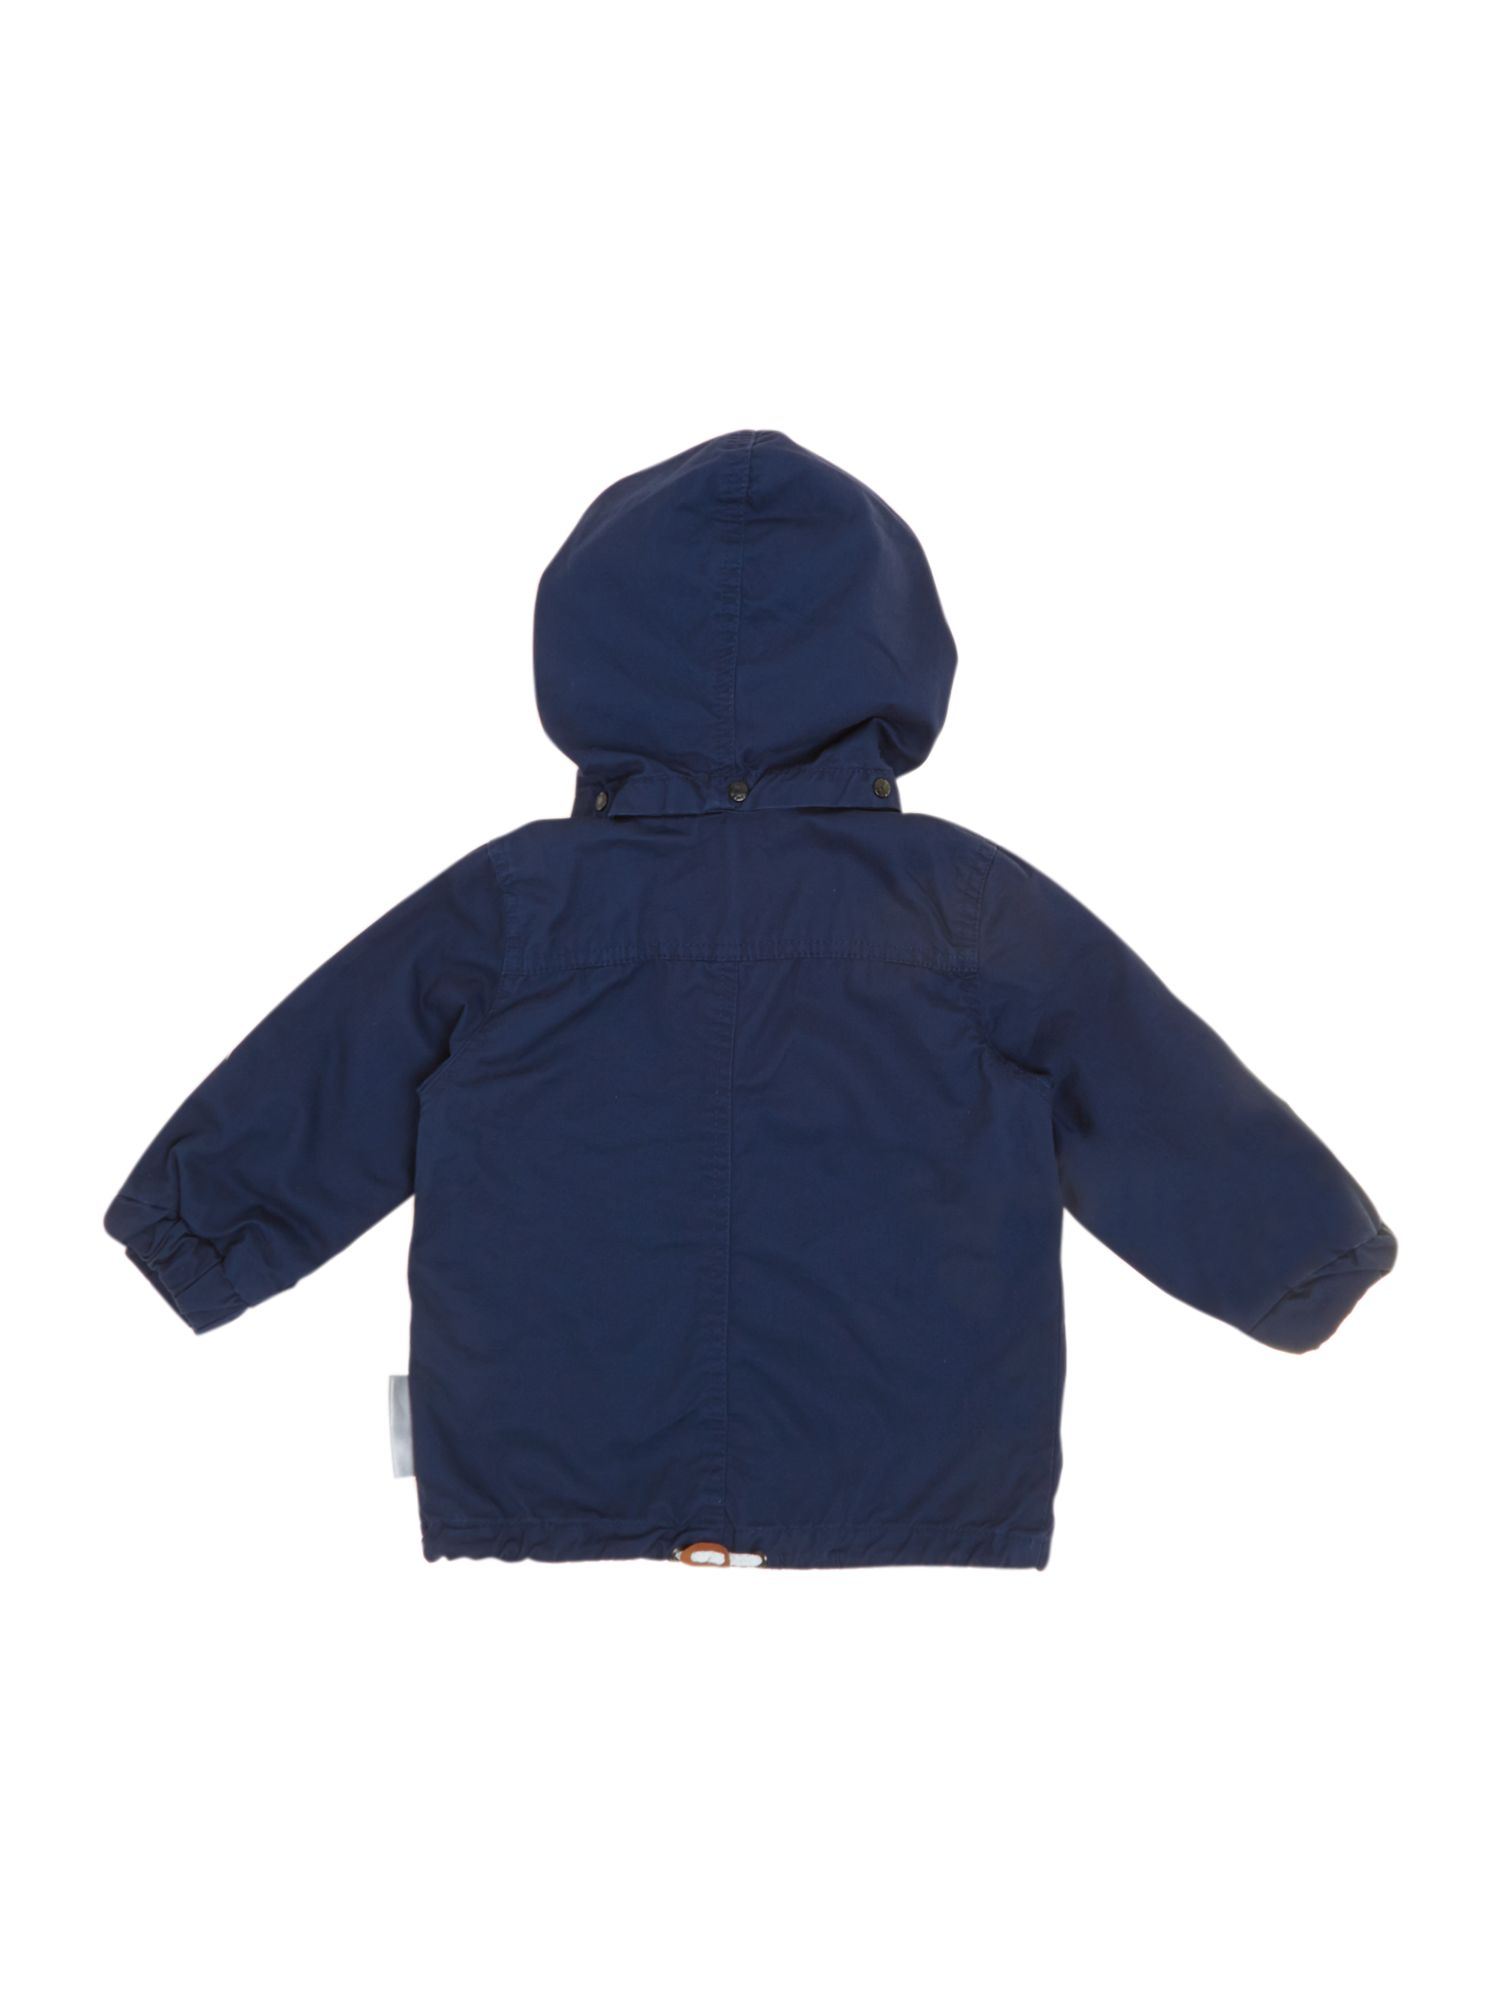 Boys casual jacket with detachable hood